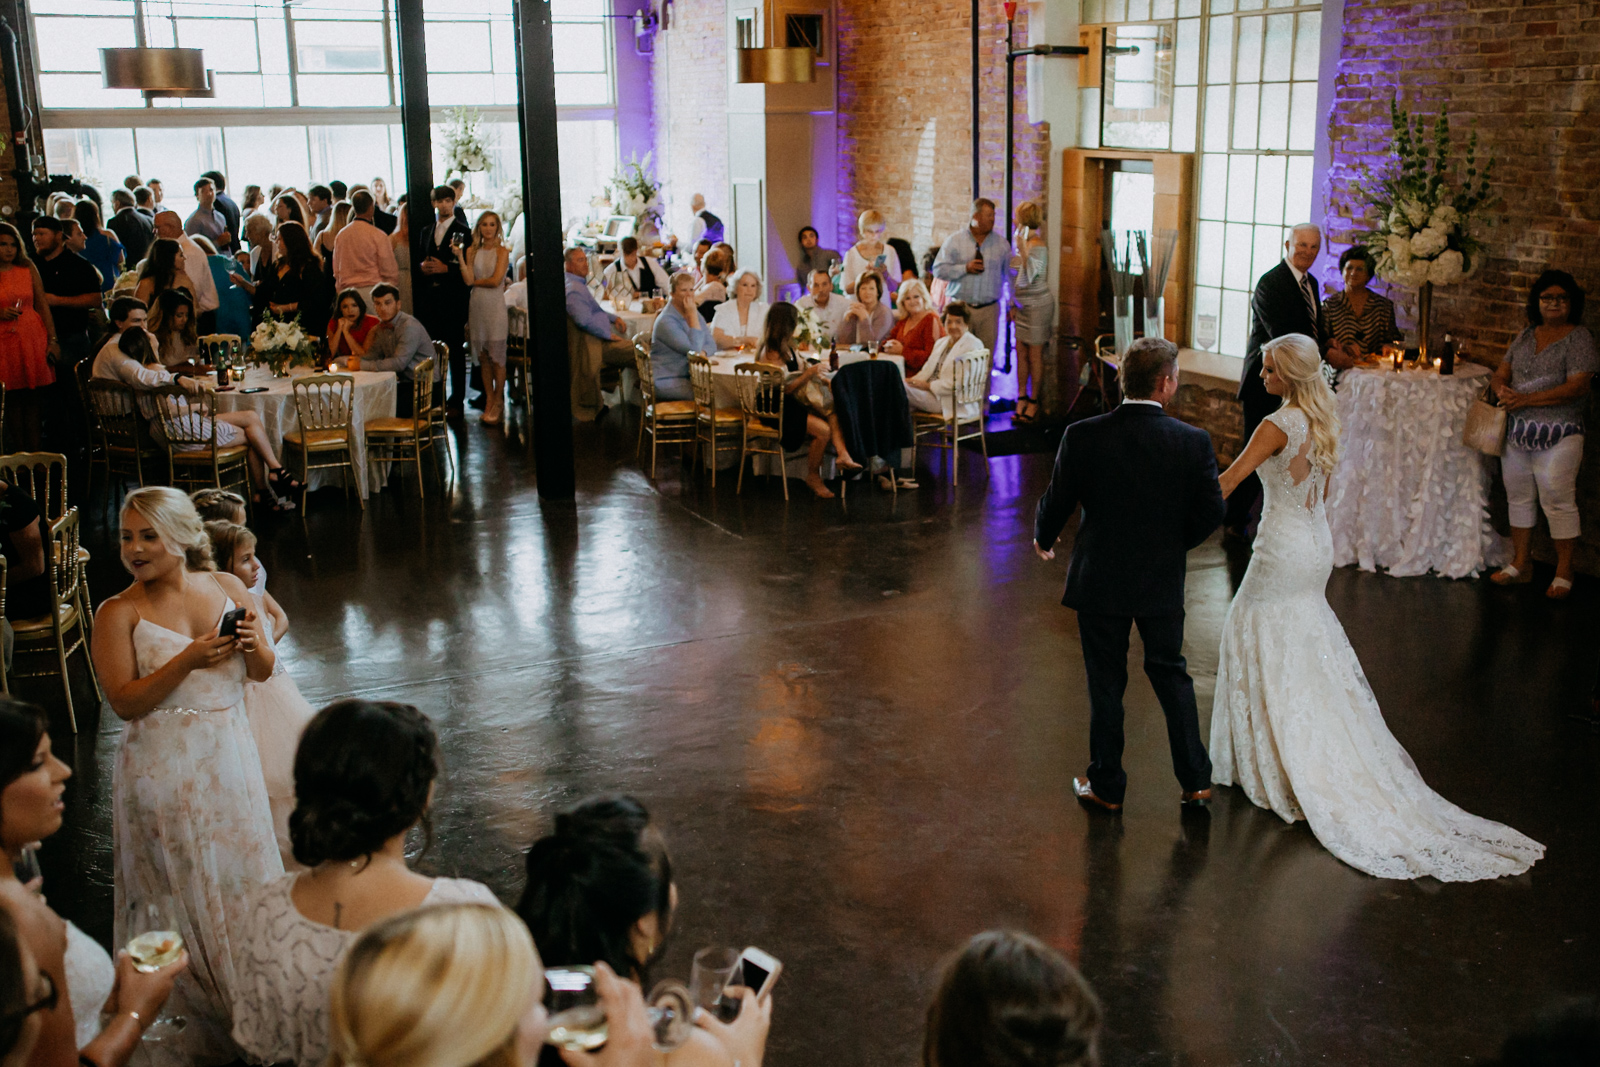 Bottling Company in Downtown, Hattiesburg Wedding